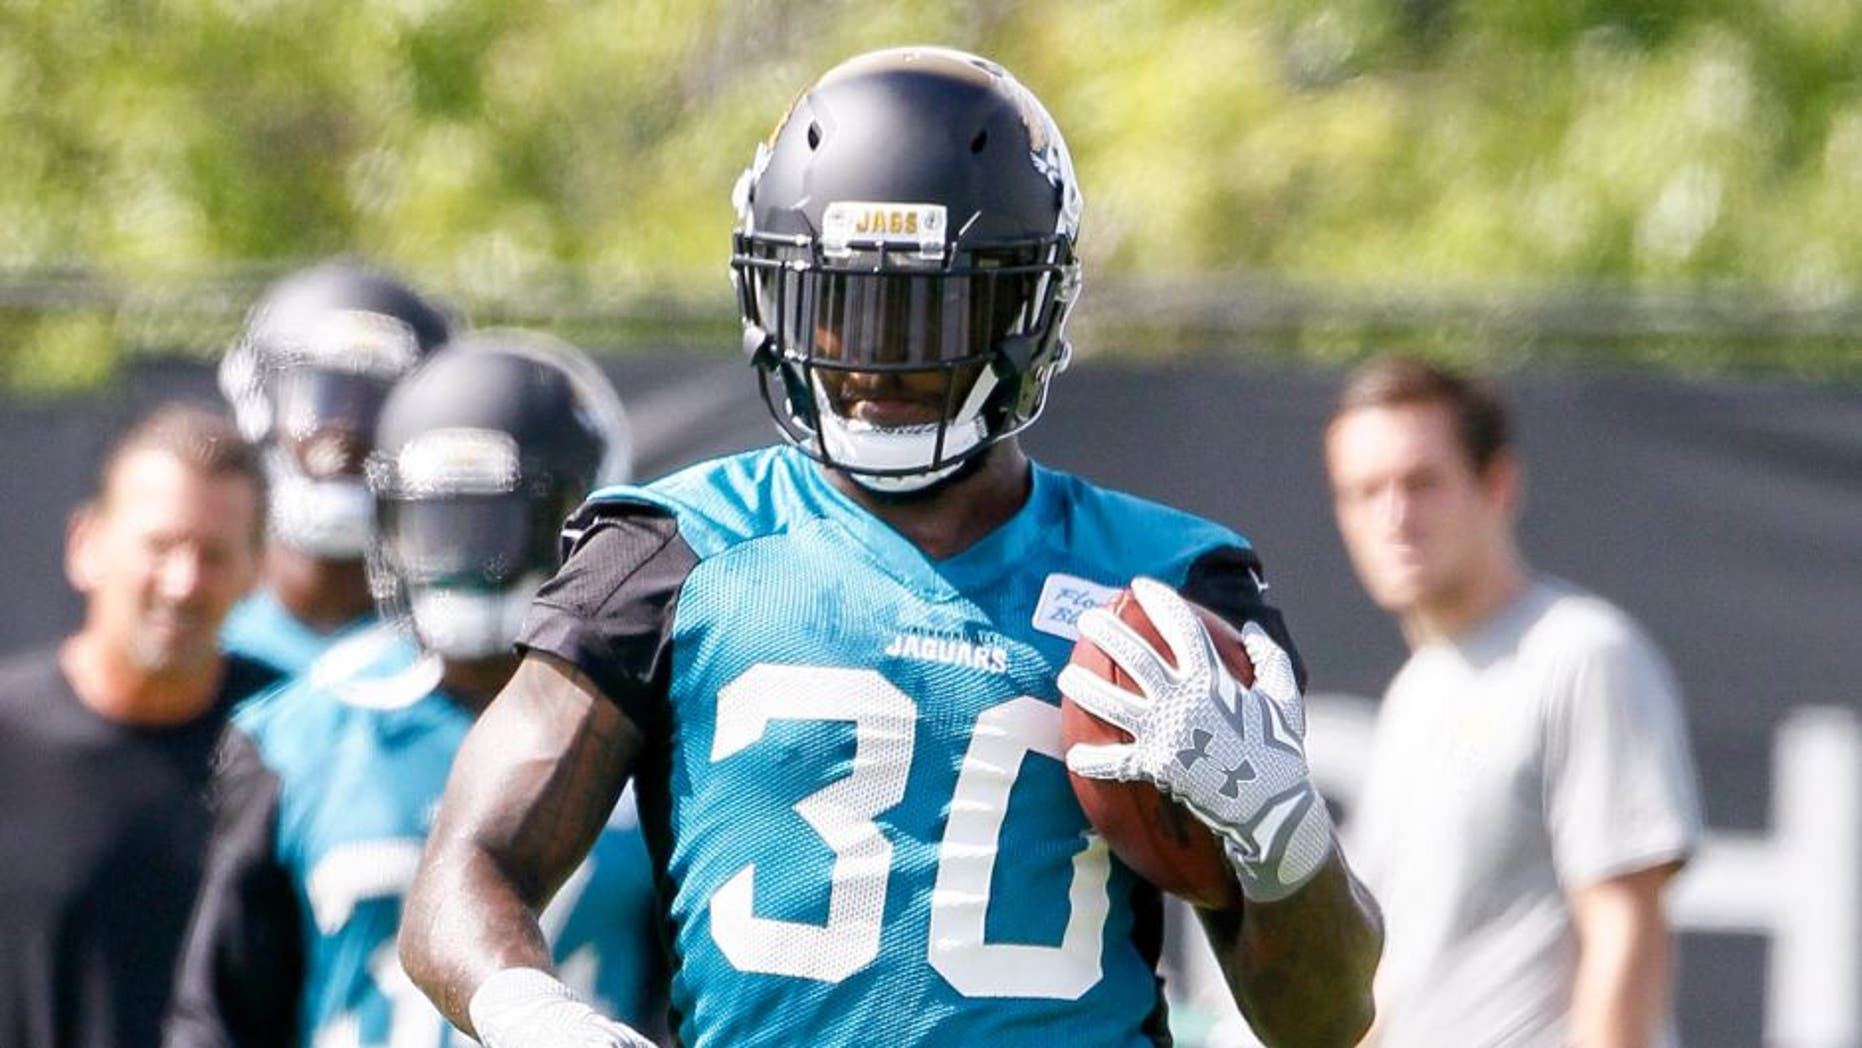 JACKSONVILLE, FL - MAY 27: Runningback Bernard Pierce #30 of the Jacksonville Jaguars during his team OTA's at Everbank Field Stadium at the Florida Blue Health and Wellness Practice Fields on May 27, 2015 in Jacksonville, Florida. (Photo by Don Juan Moore/Getty Images)